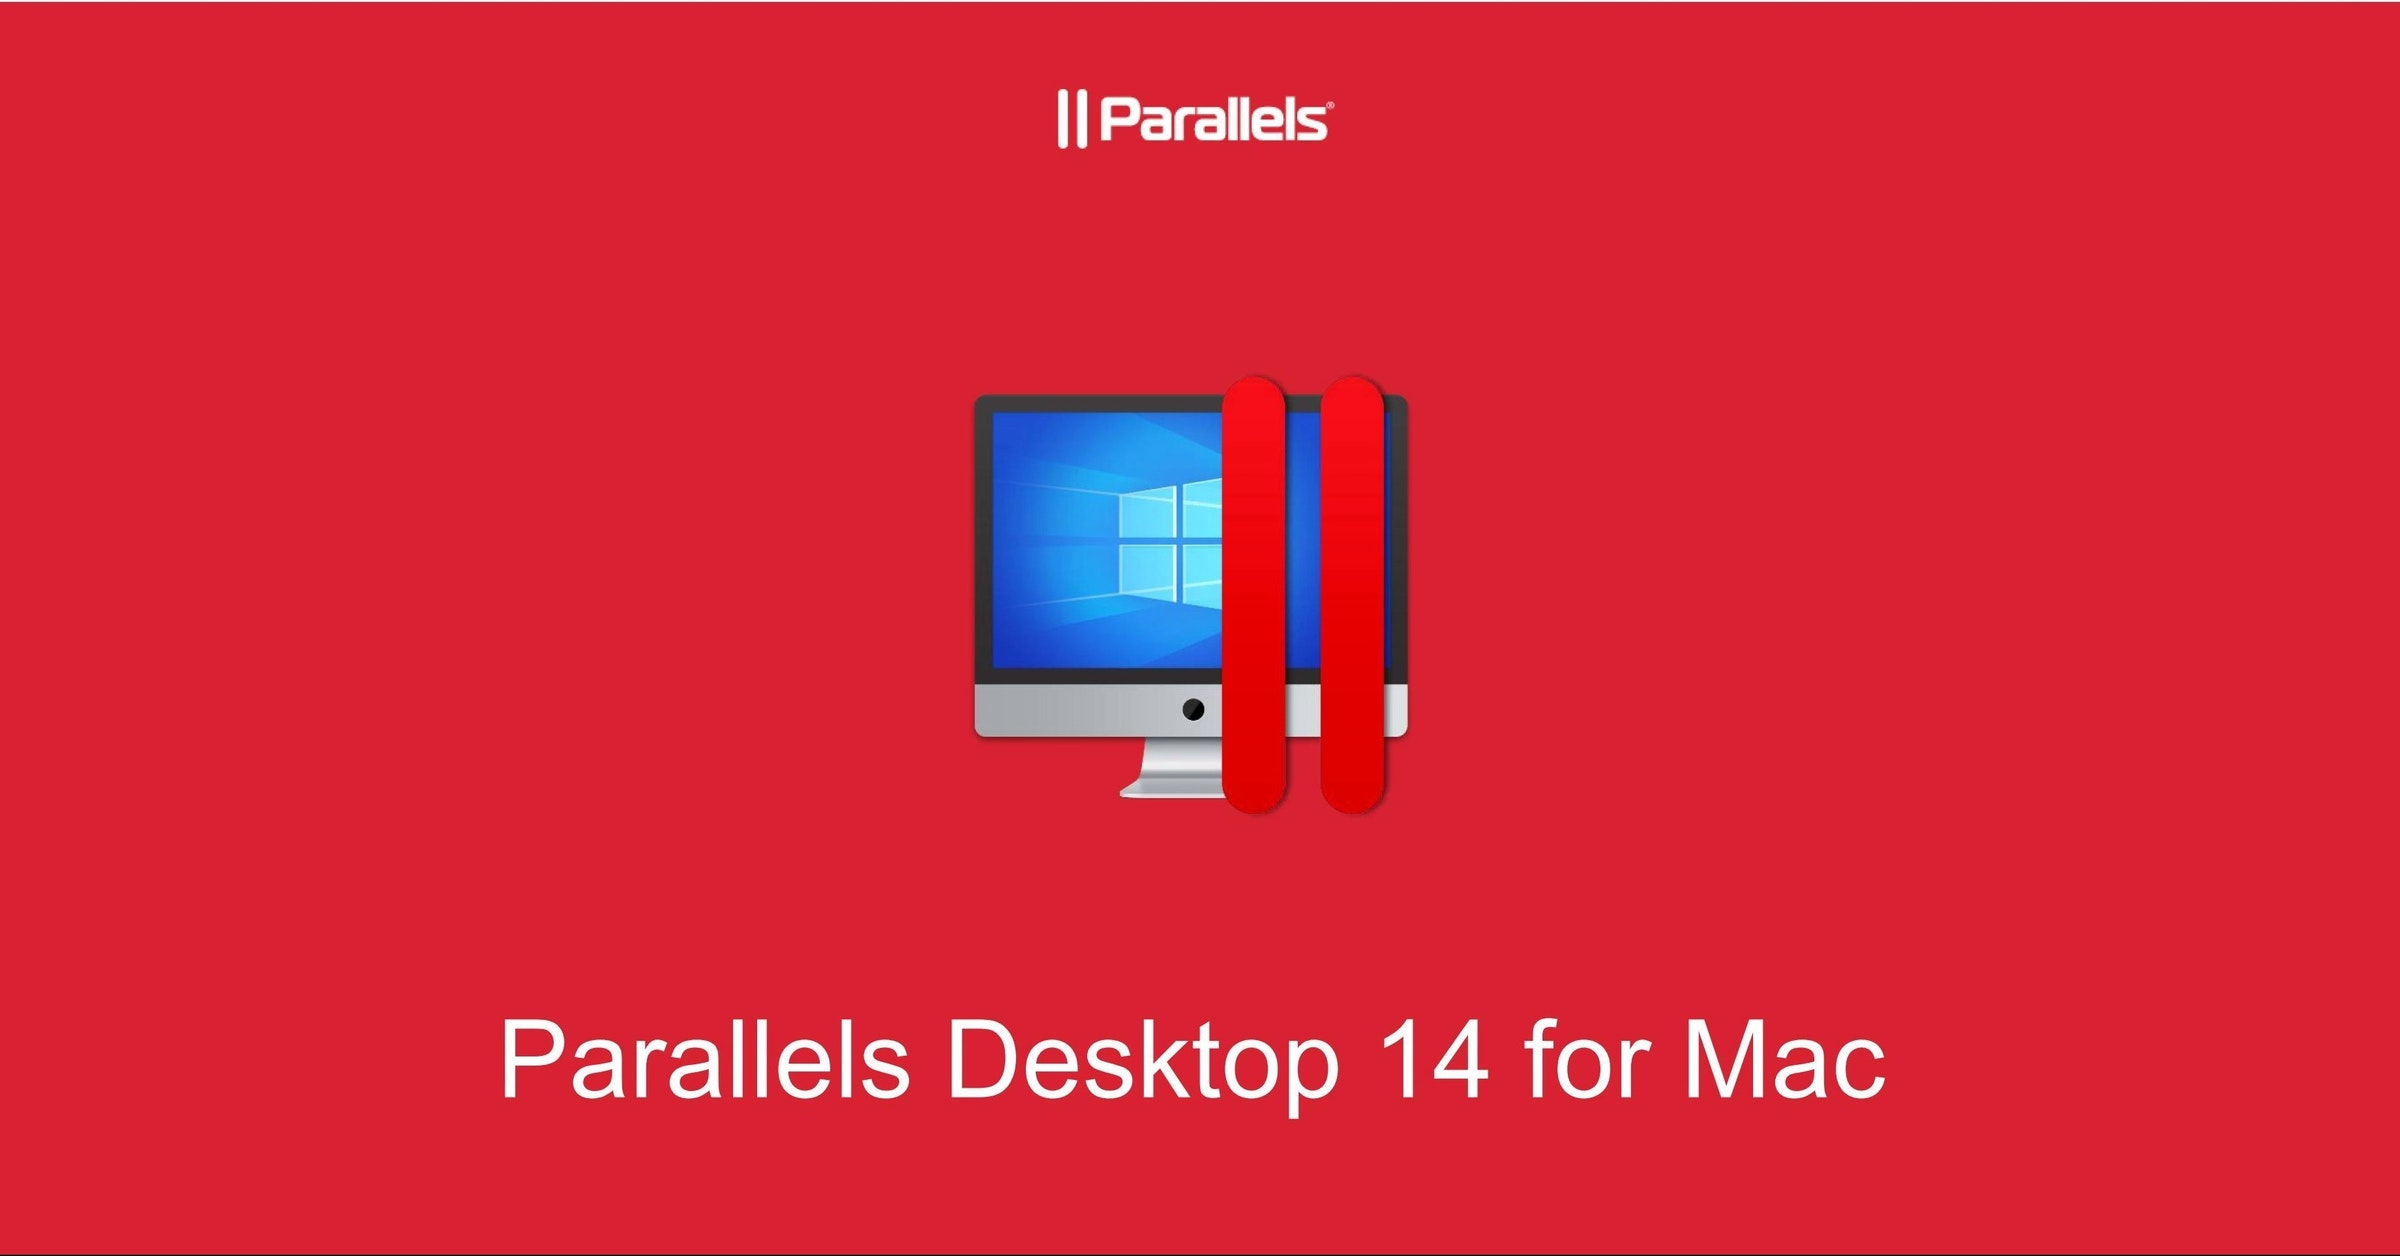 Parallels, , , Apple, Macintosh, macOS, MacBook Pro, Parallels Desktop for Mac, Macintosh operating systems, MacBook, management college of southern africa, text, product, font, line, area, brand, technology, product, angle, graphic design, Management College of Southern Africa